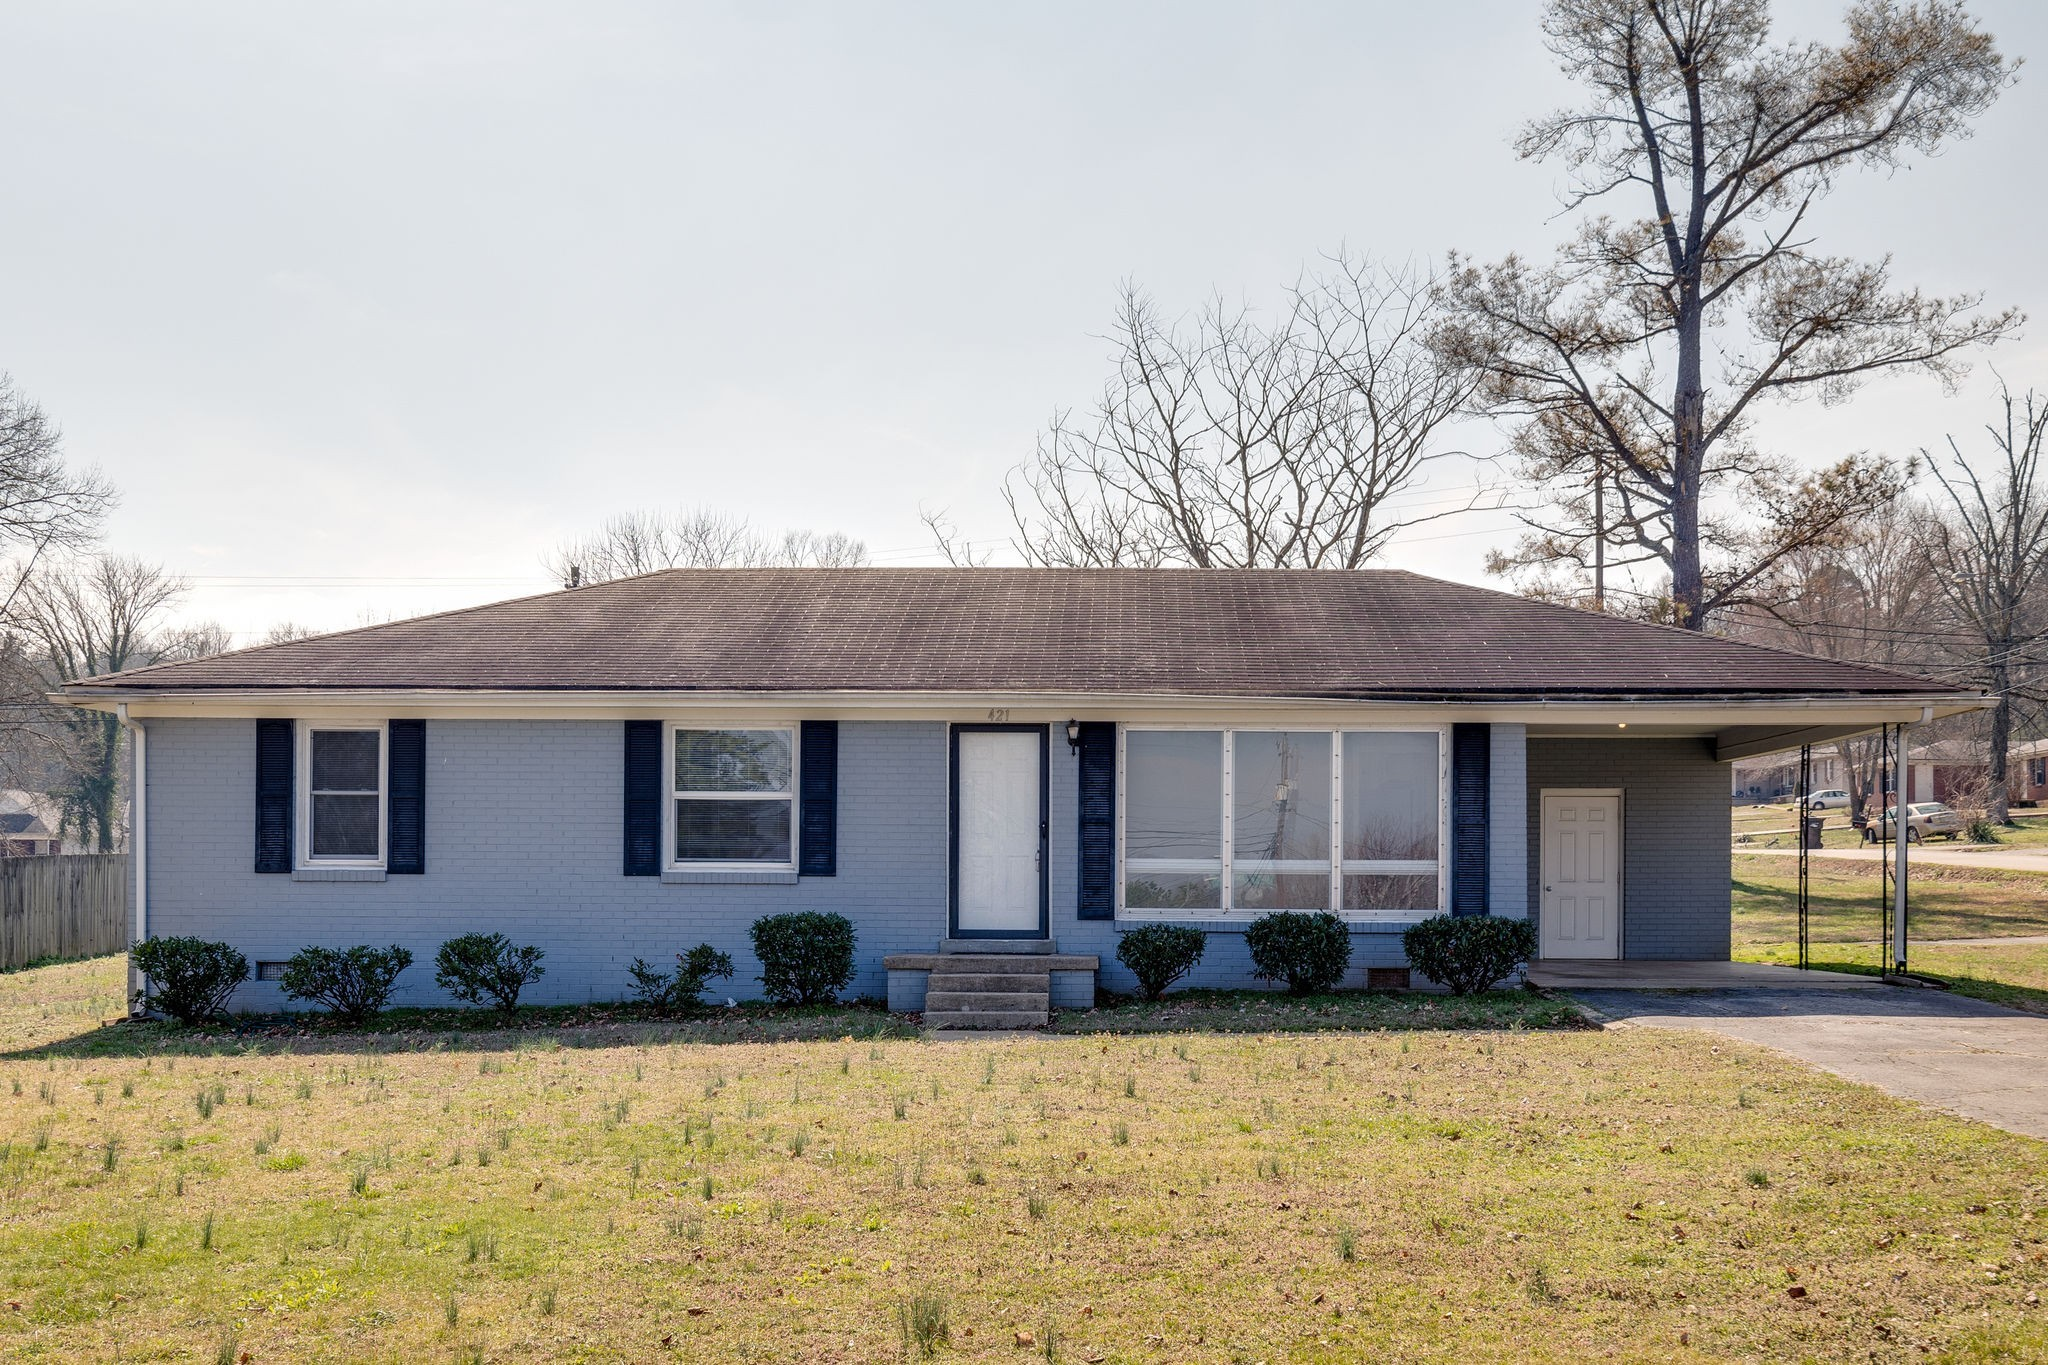 421 N James M Campbell Blvd Property Photo - Columbia, TN real estate listing